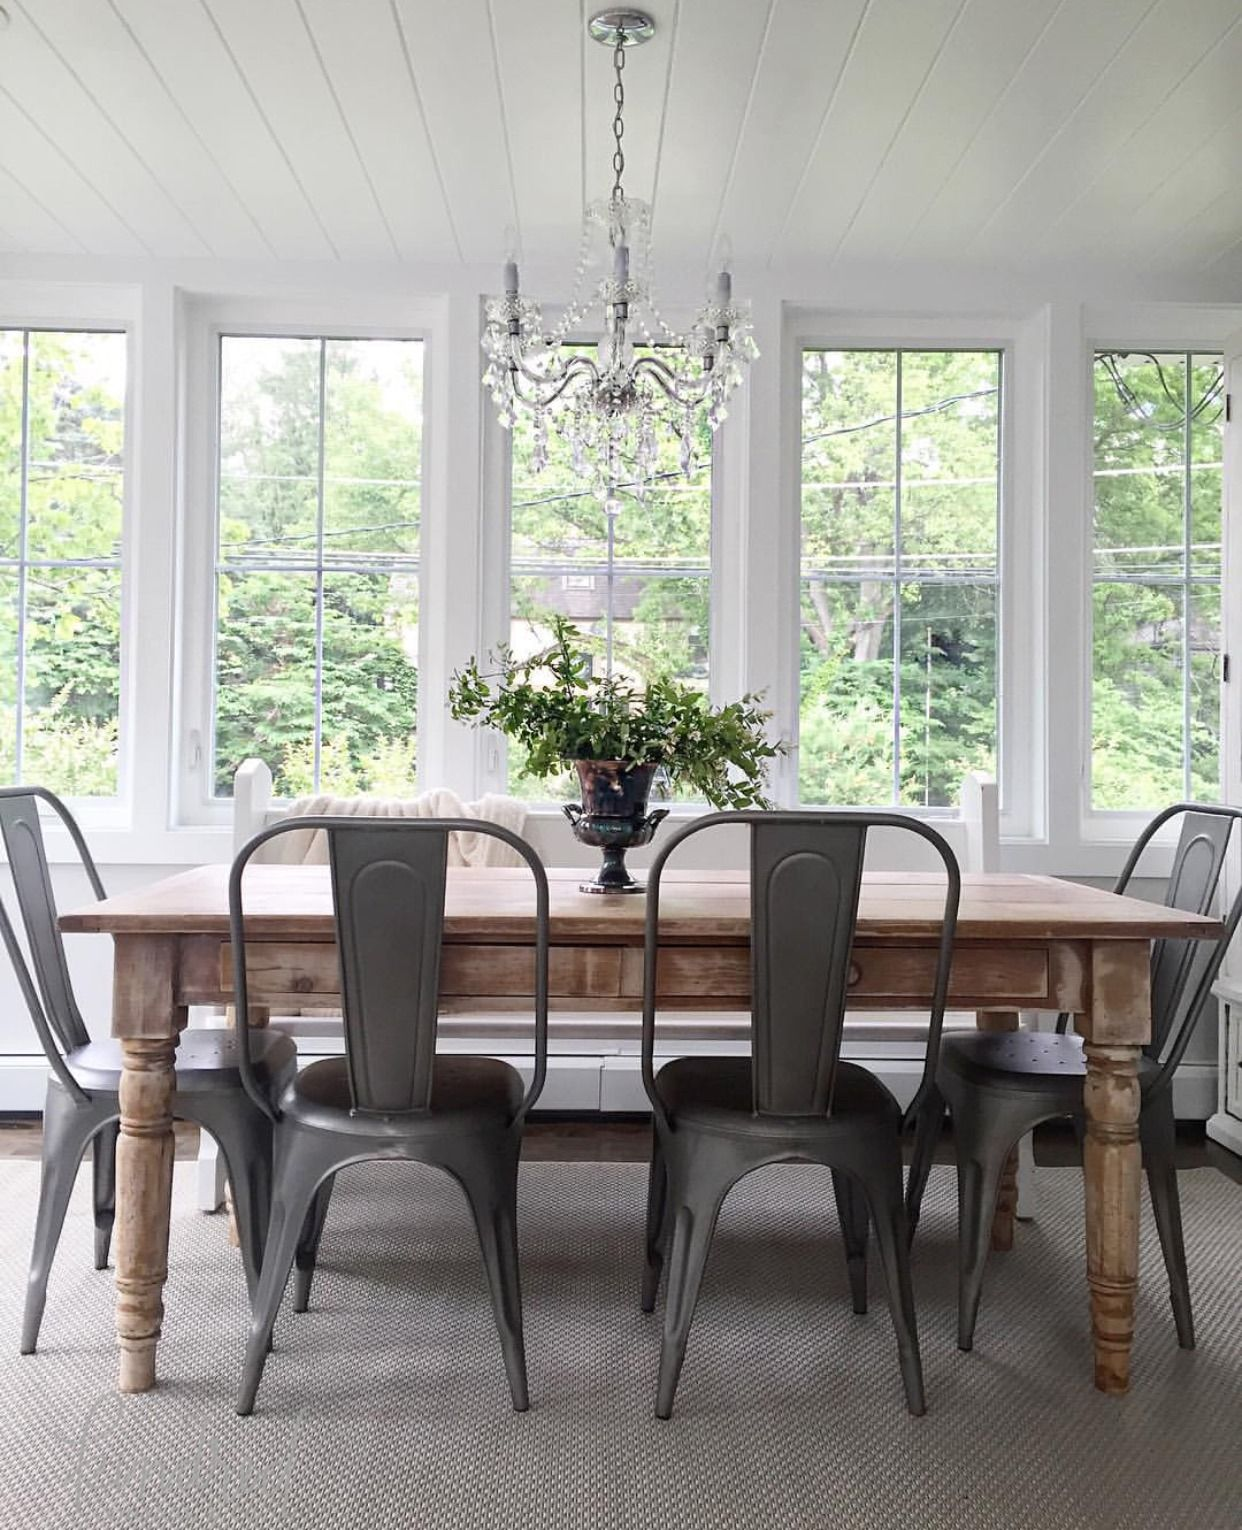 Kindred vintage, farmhouse style | *Home & Design Inspiration ...